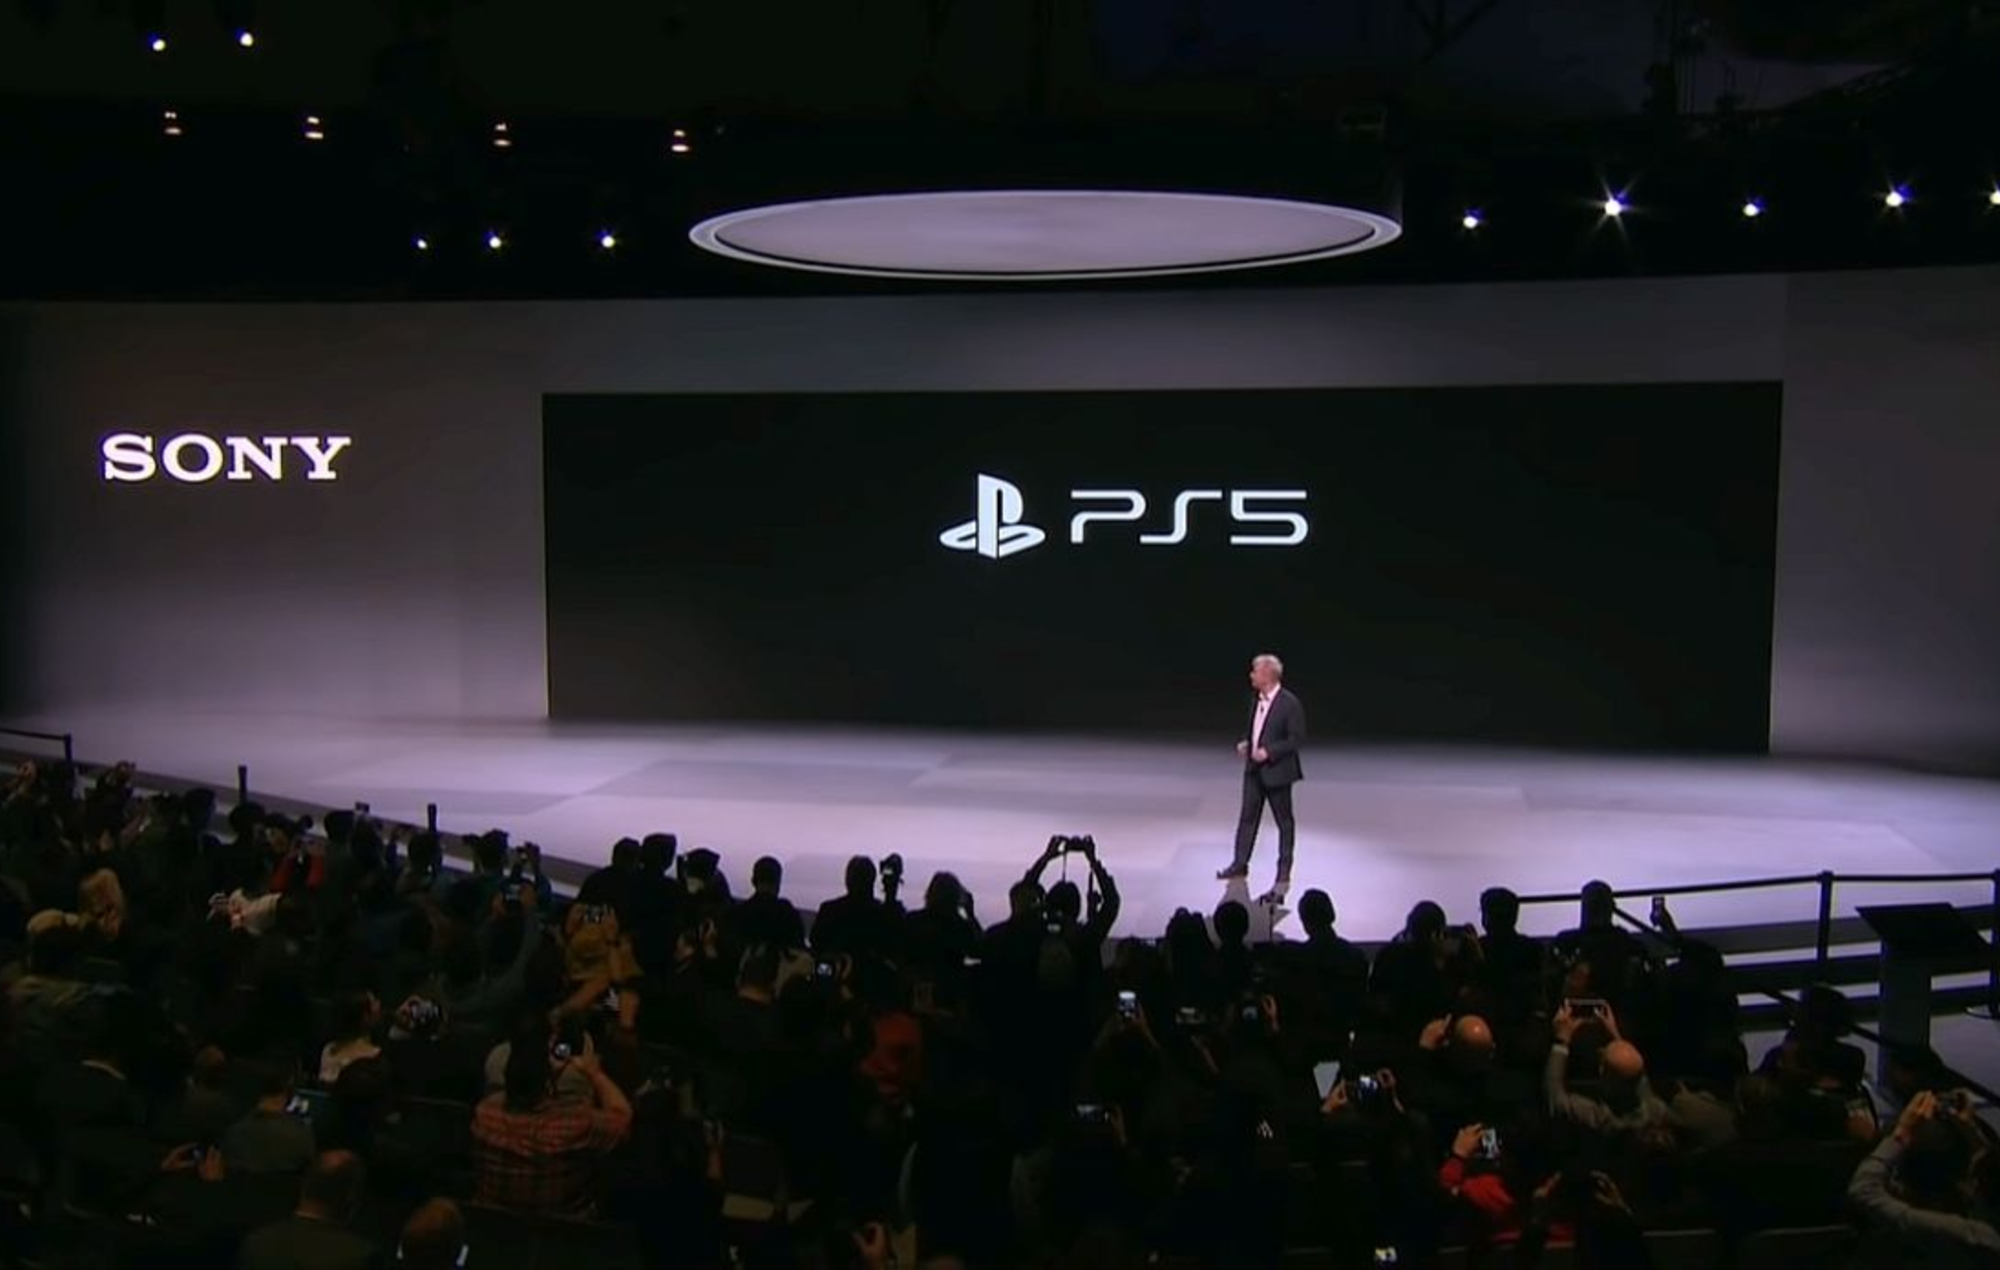 Sony's PS5 event earlier this year